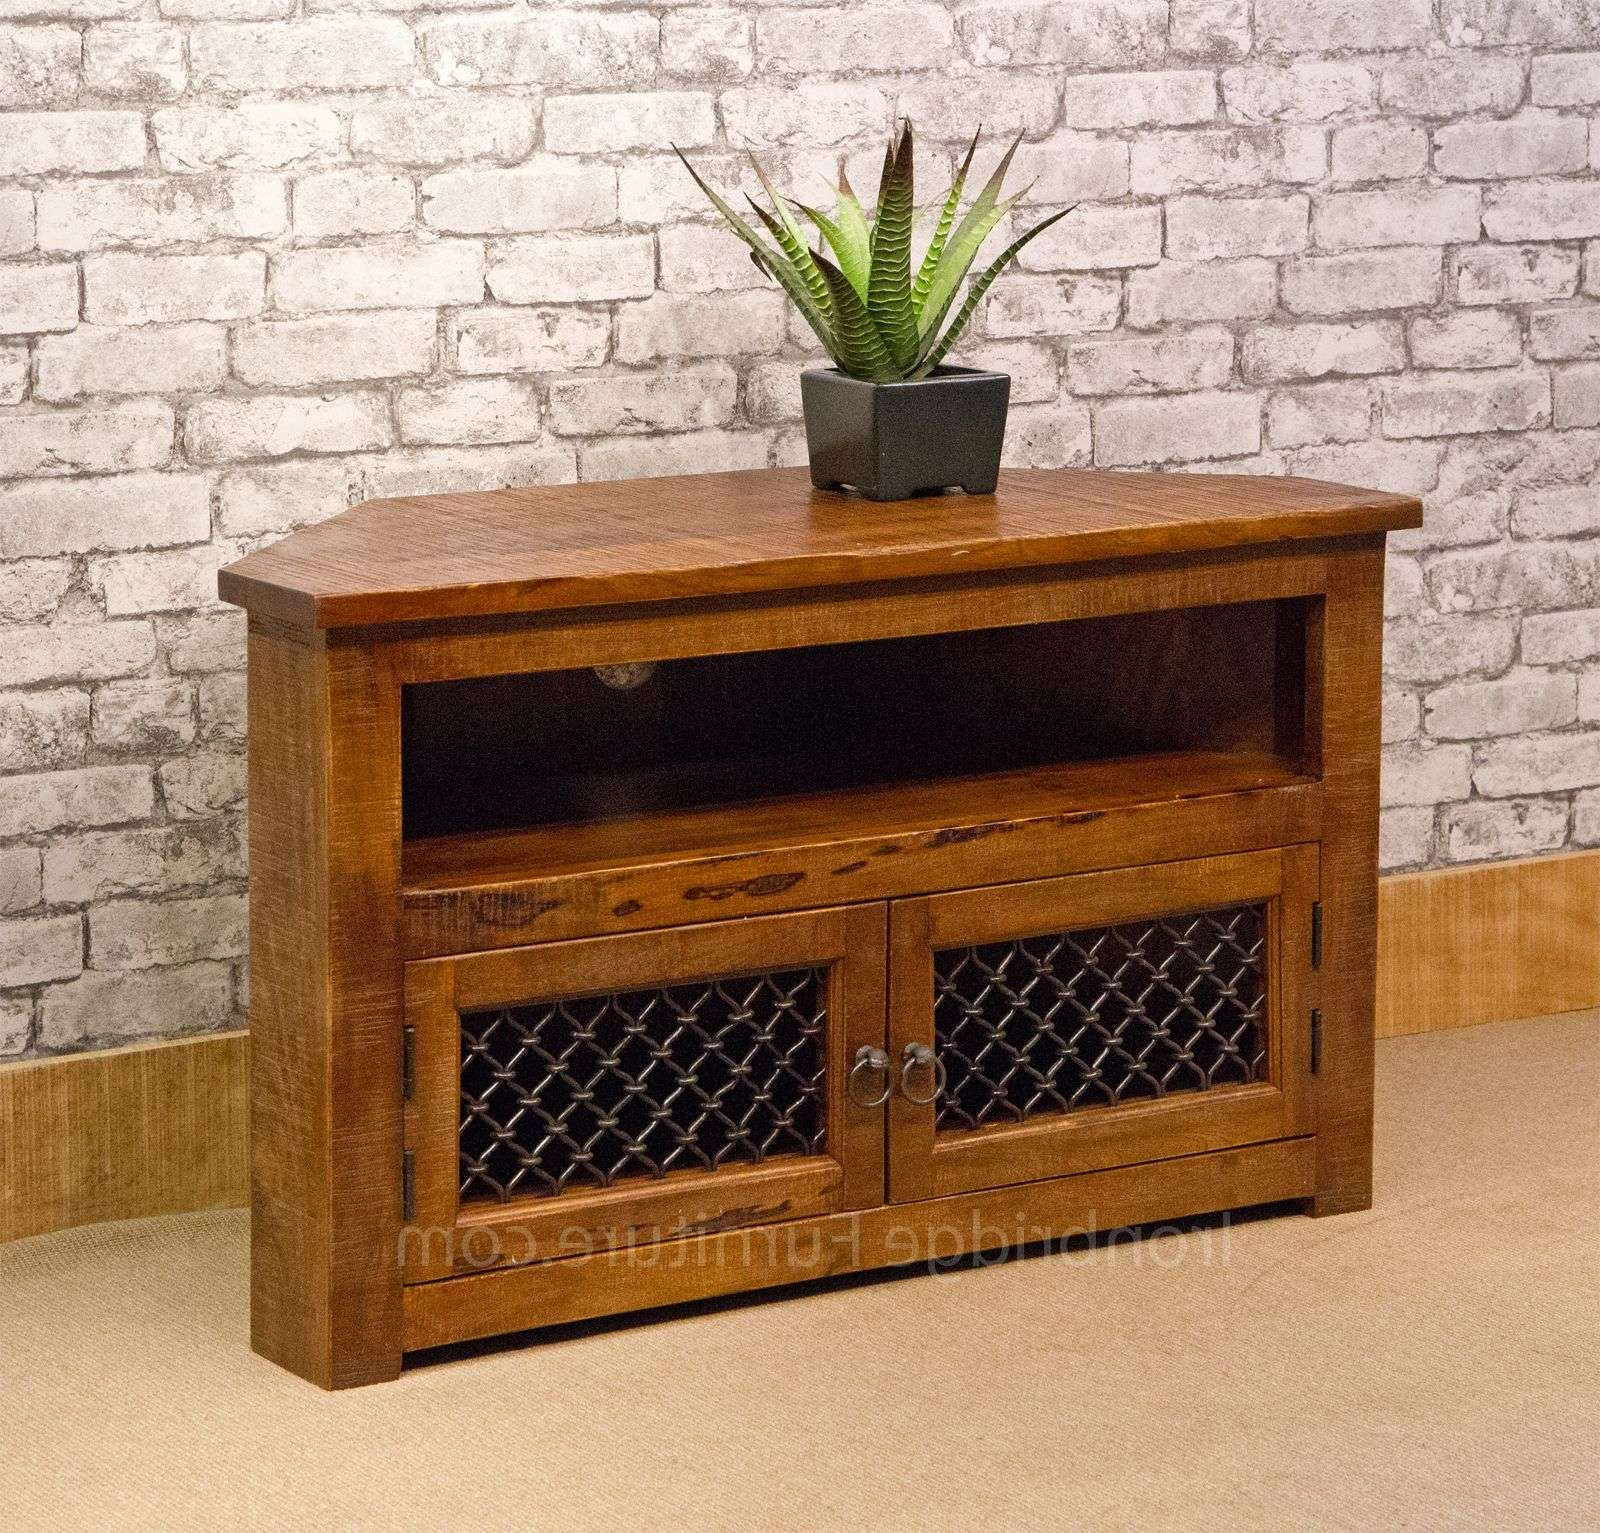 Rf 13 Jali Rustic Farm Corner Tv Stand 100cm Intended For Tv Stands 100cm (View 7 of 15)